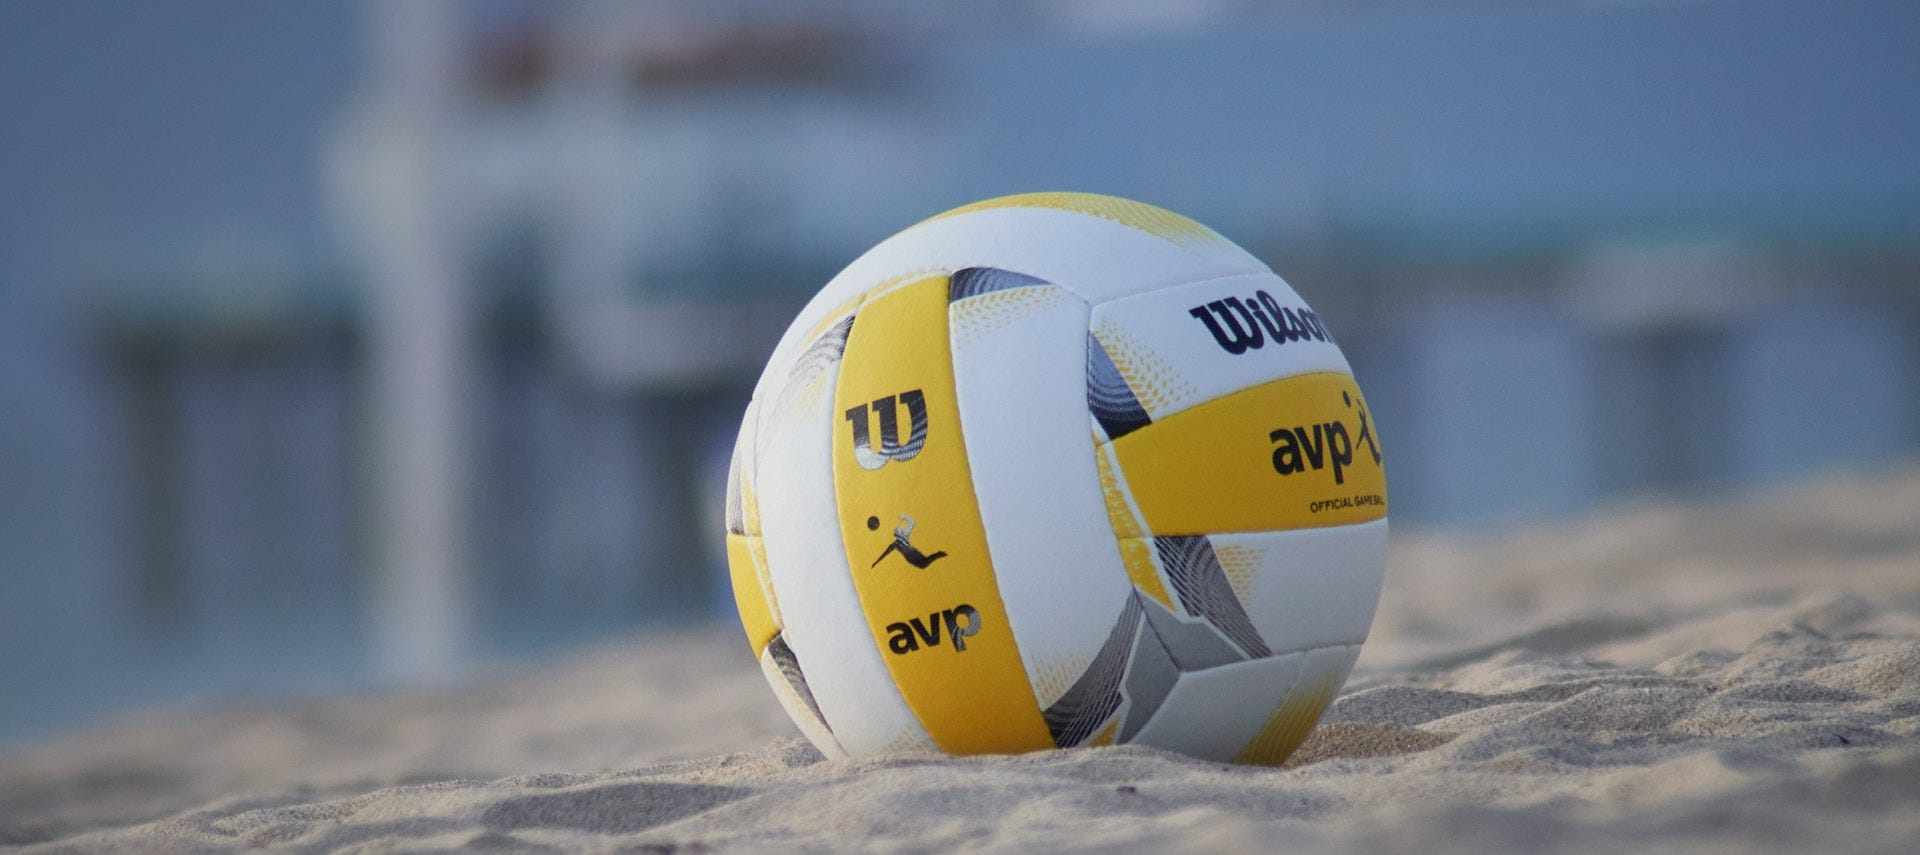 Playoff College Football 2018 >> Volleyball Equipment - Wilson Volleyball